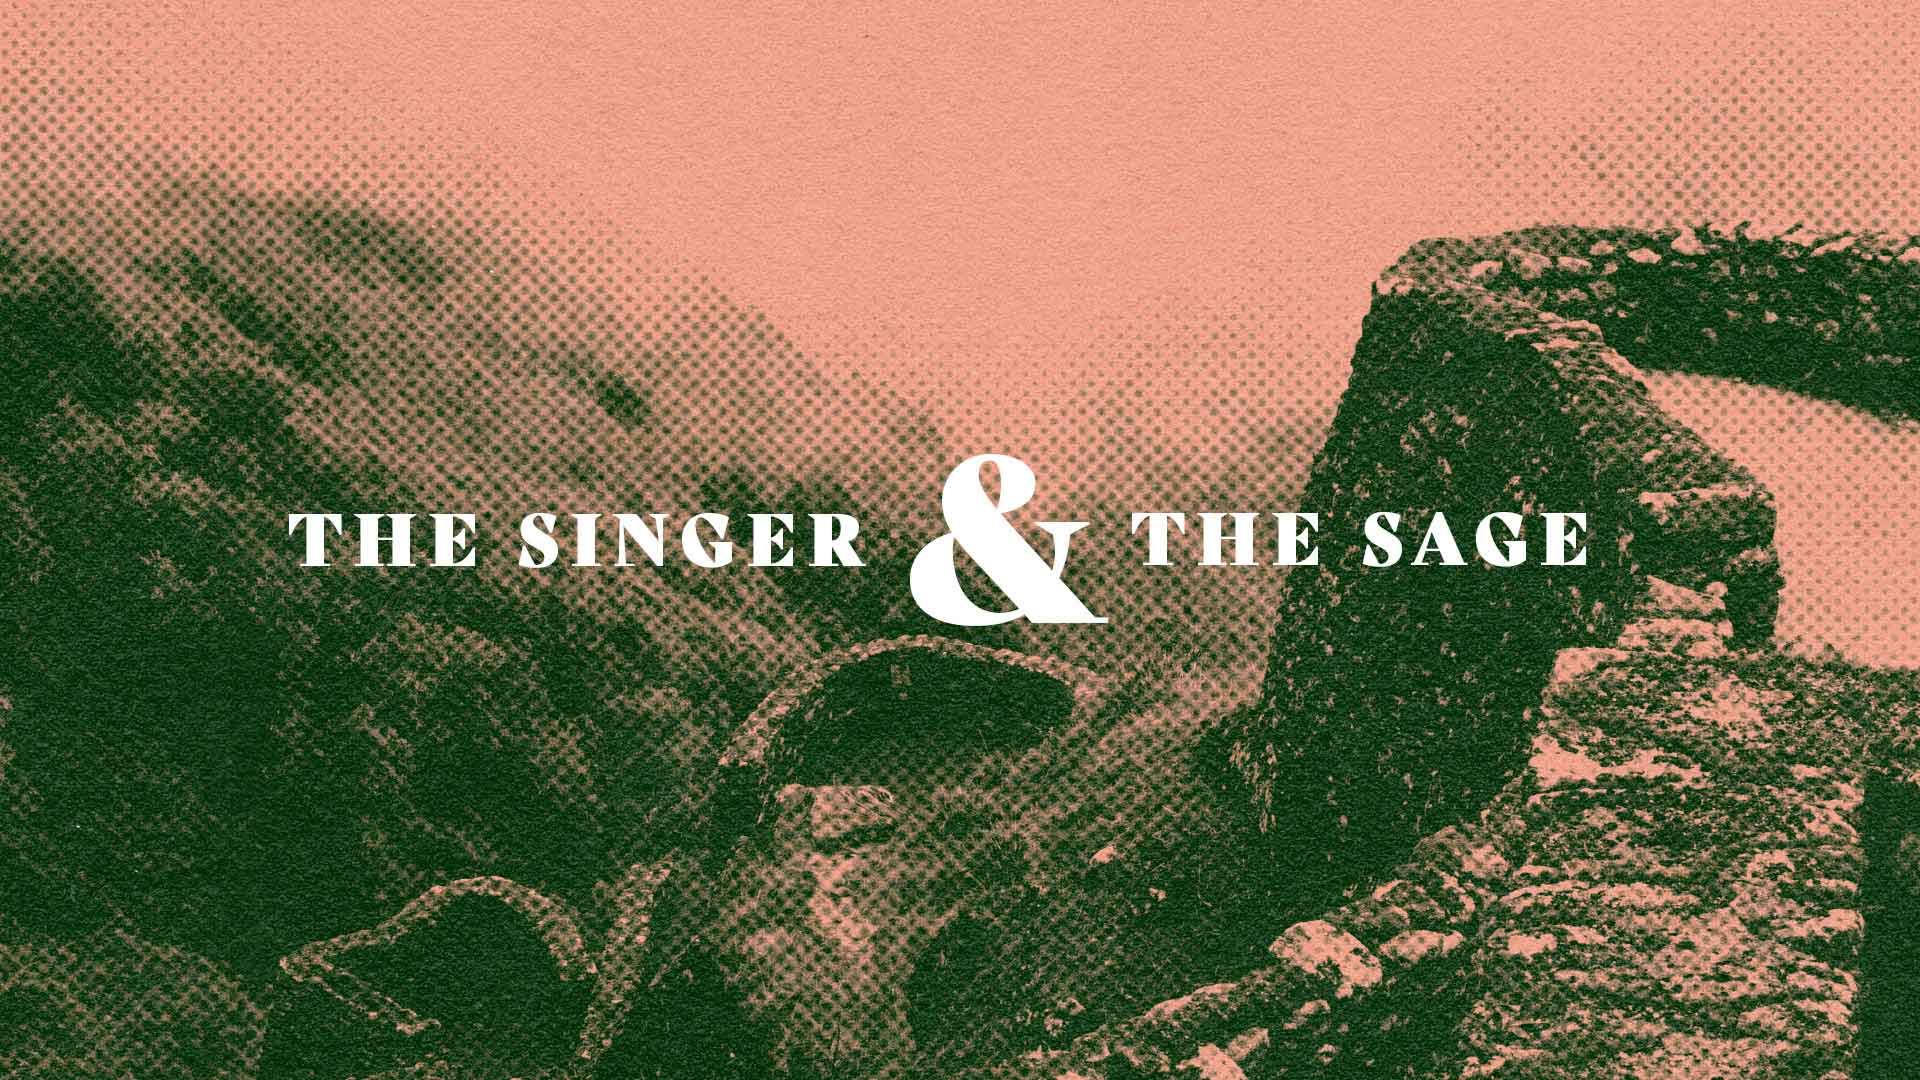 Series: The Singer & The Sage, Part 2